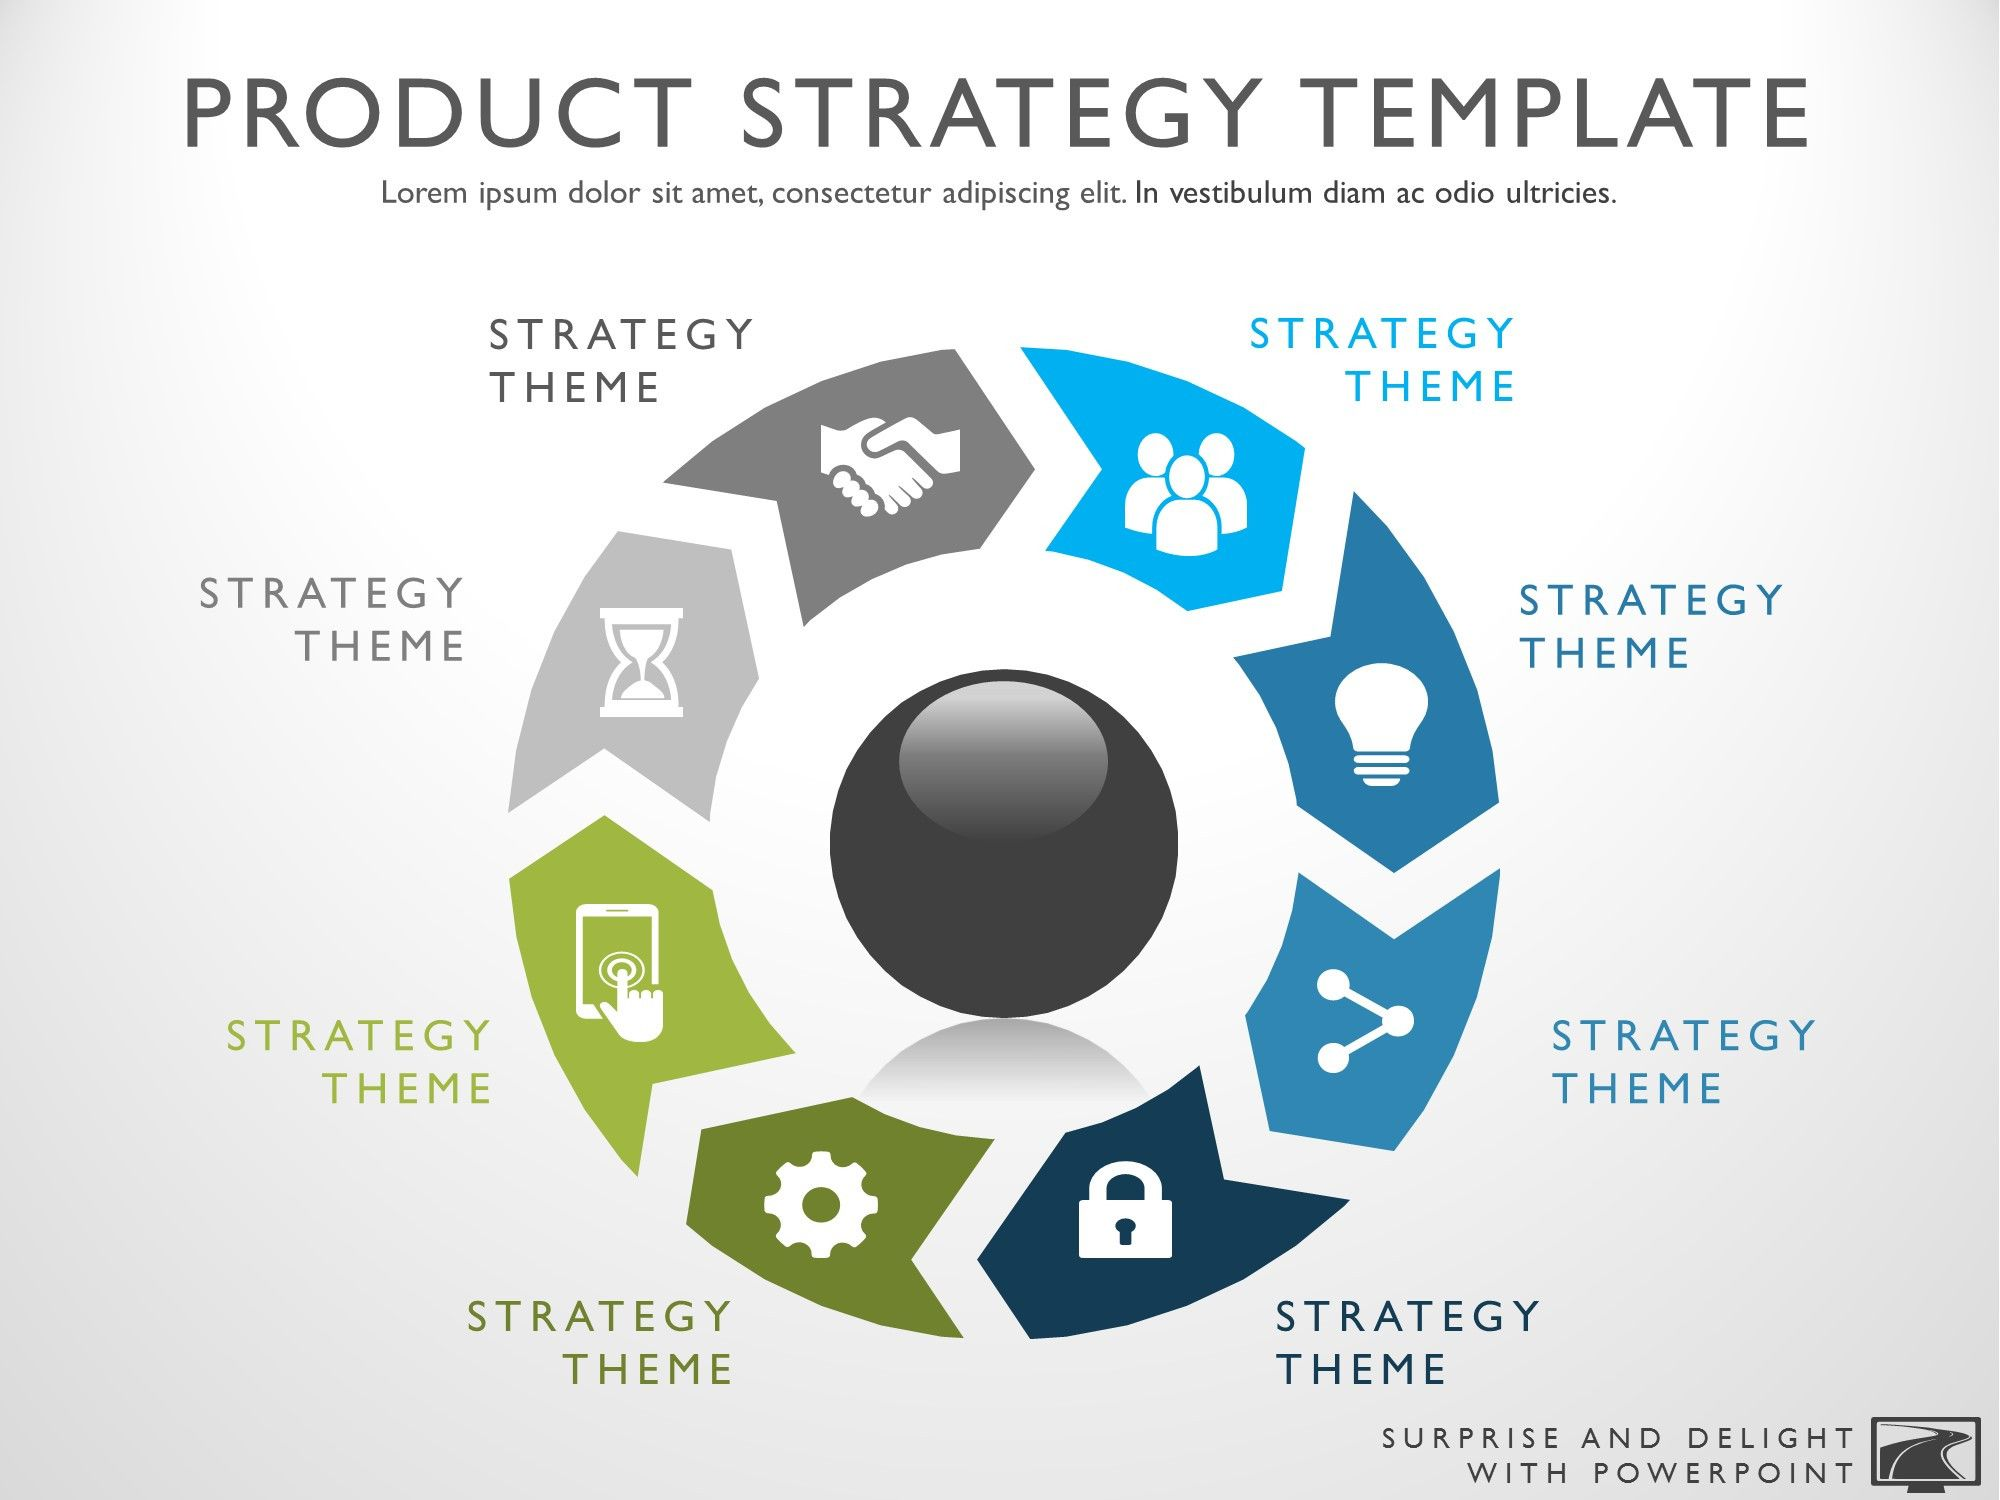 Product strategy template product strategy template branding product strategy template my product roadmap ideas pinterest pronofoot35fo Gallery